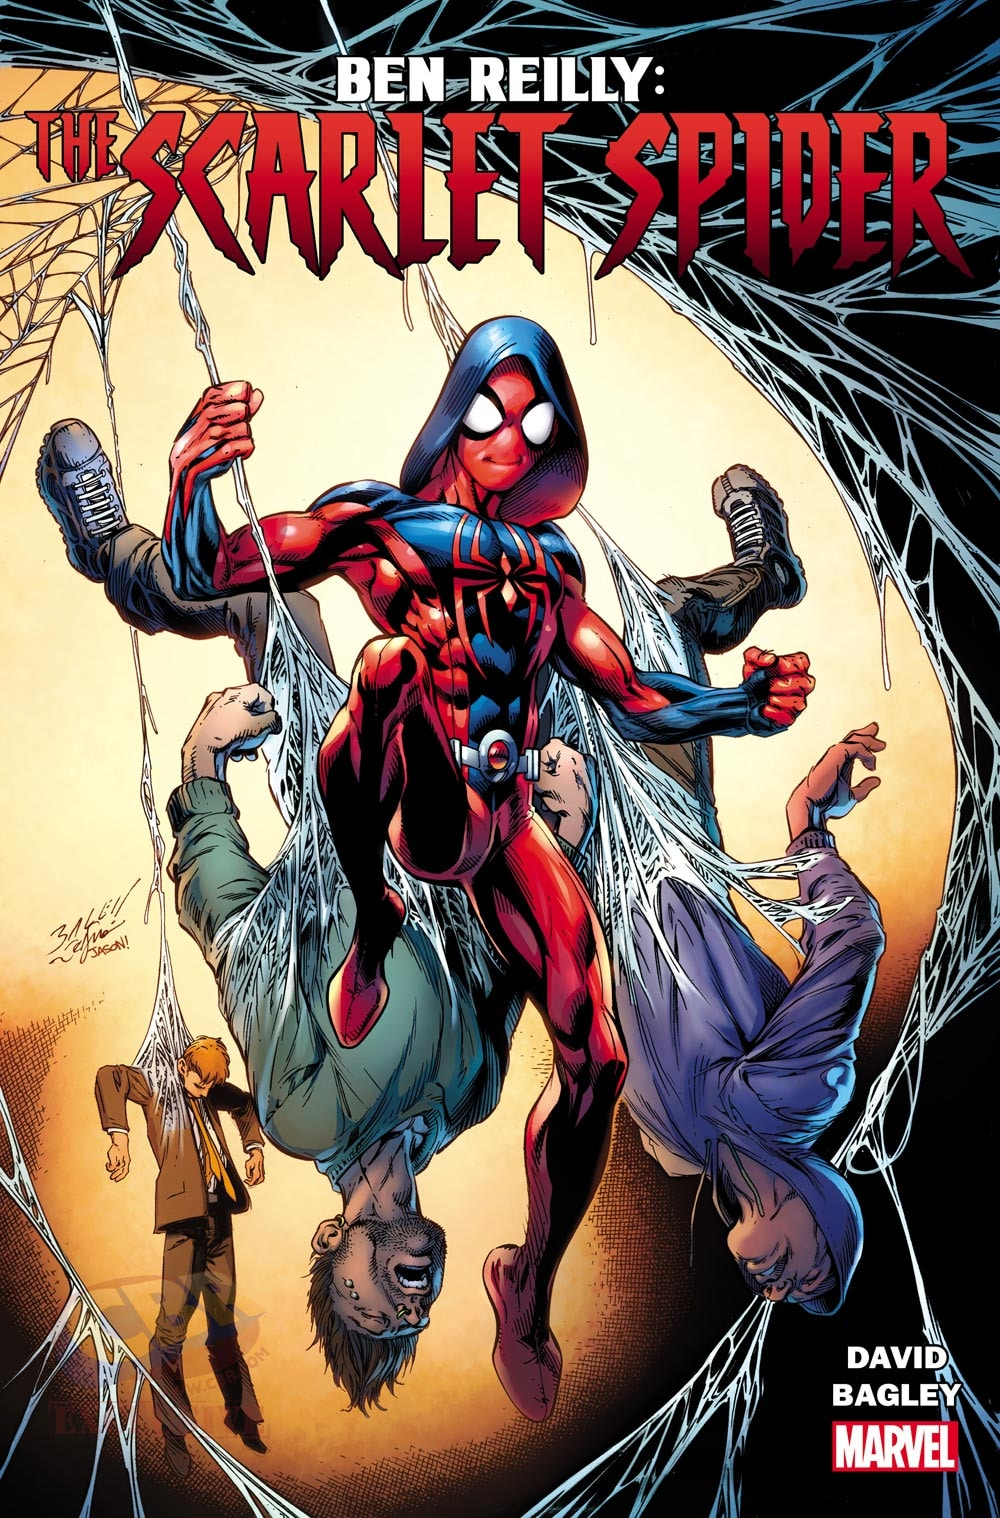 Ben Reilly Returns As The Scarlet Spider In New Ongoing Series Later This Year